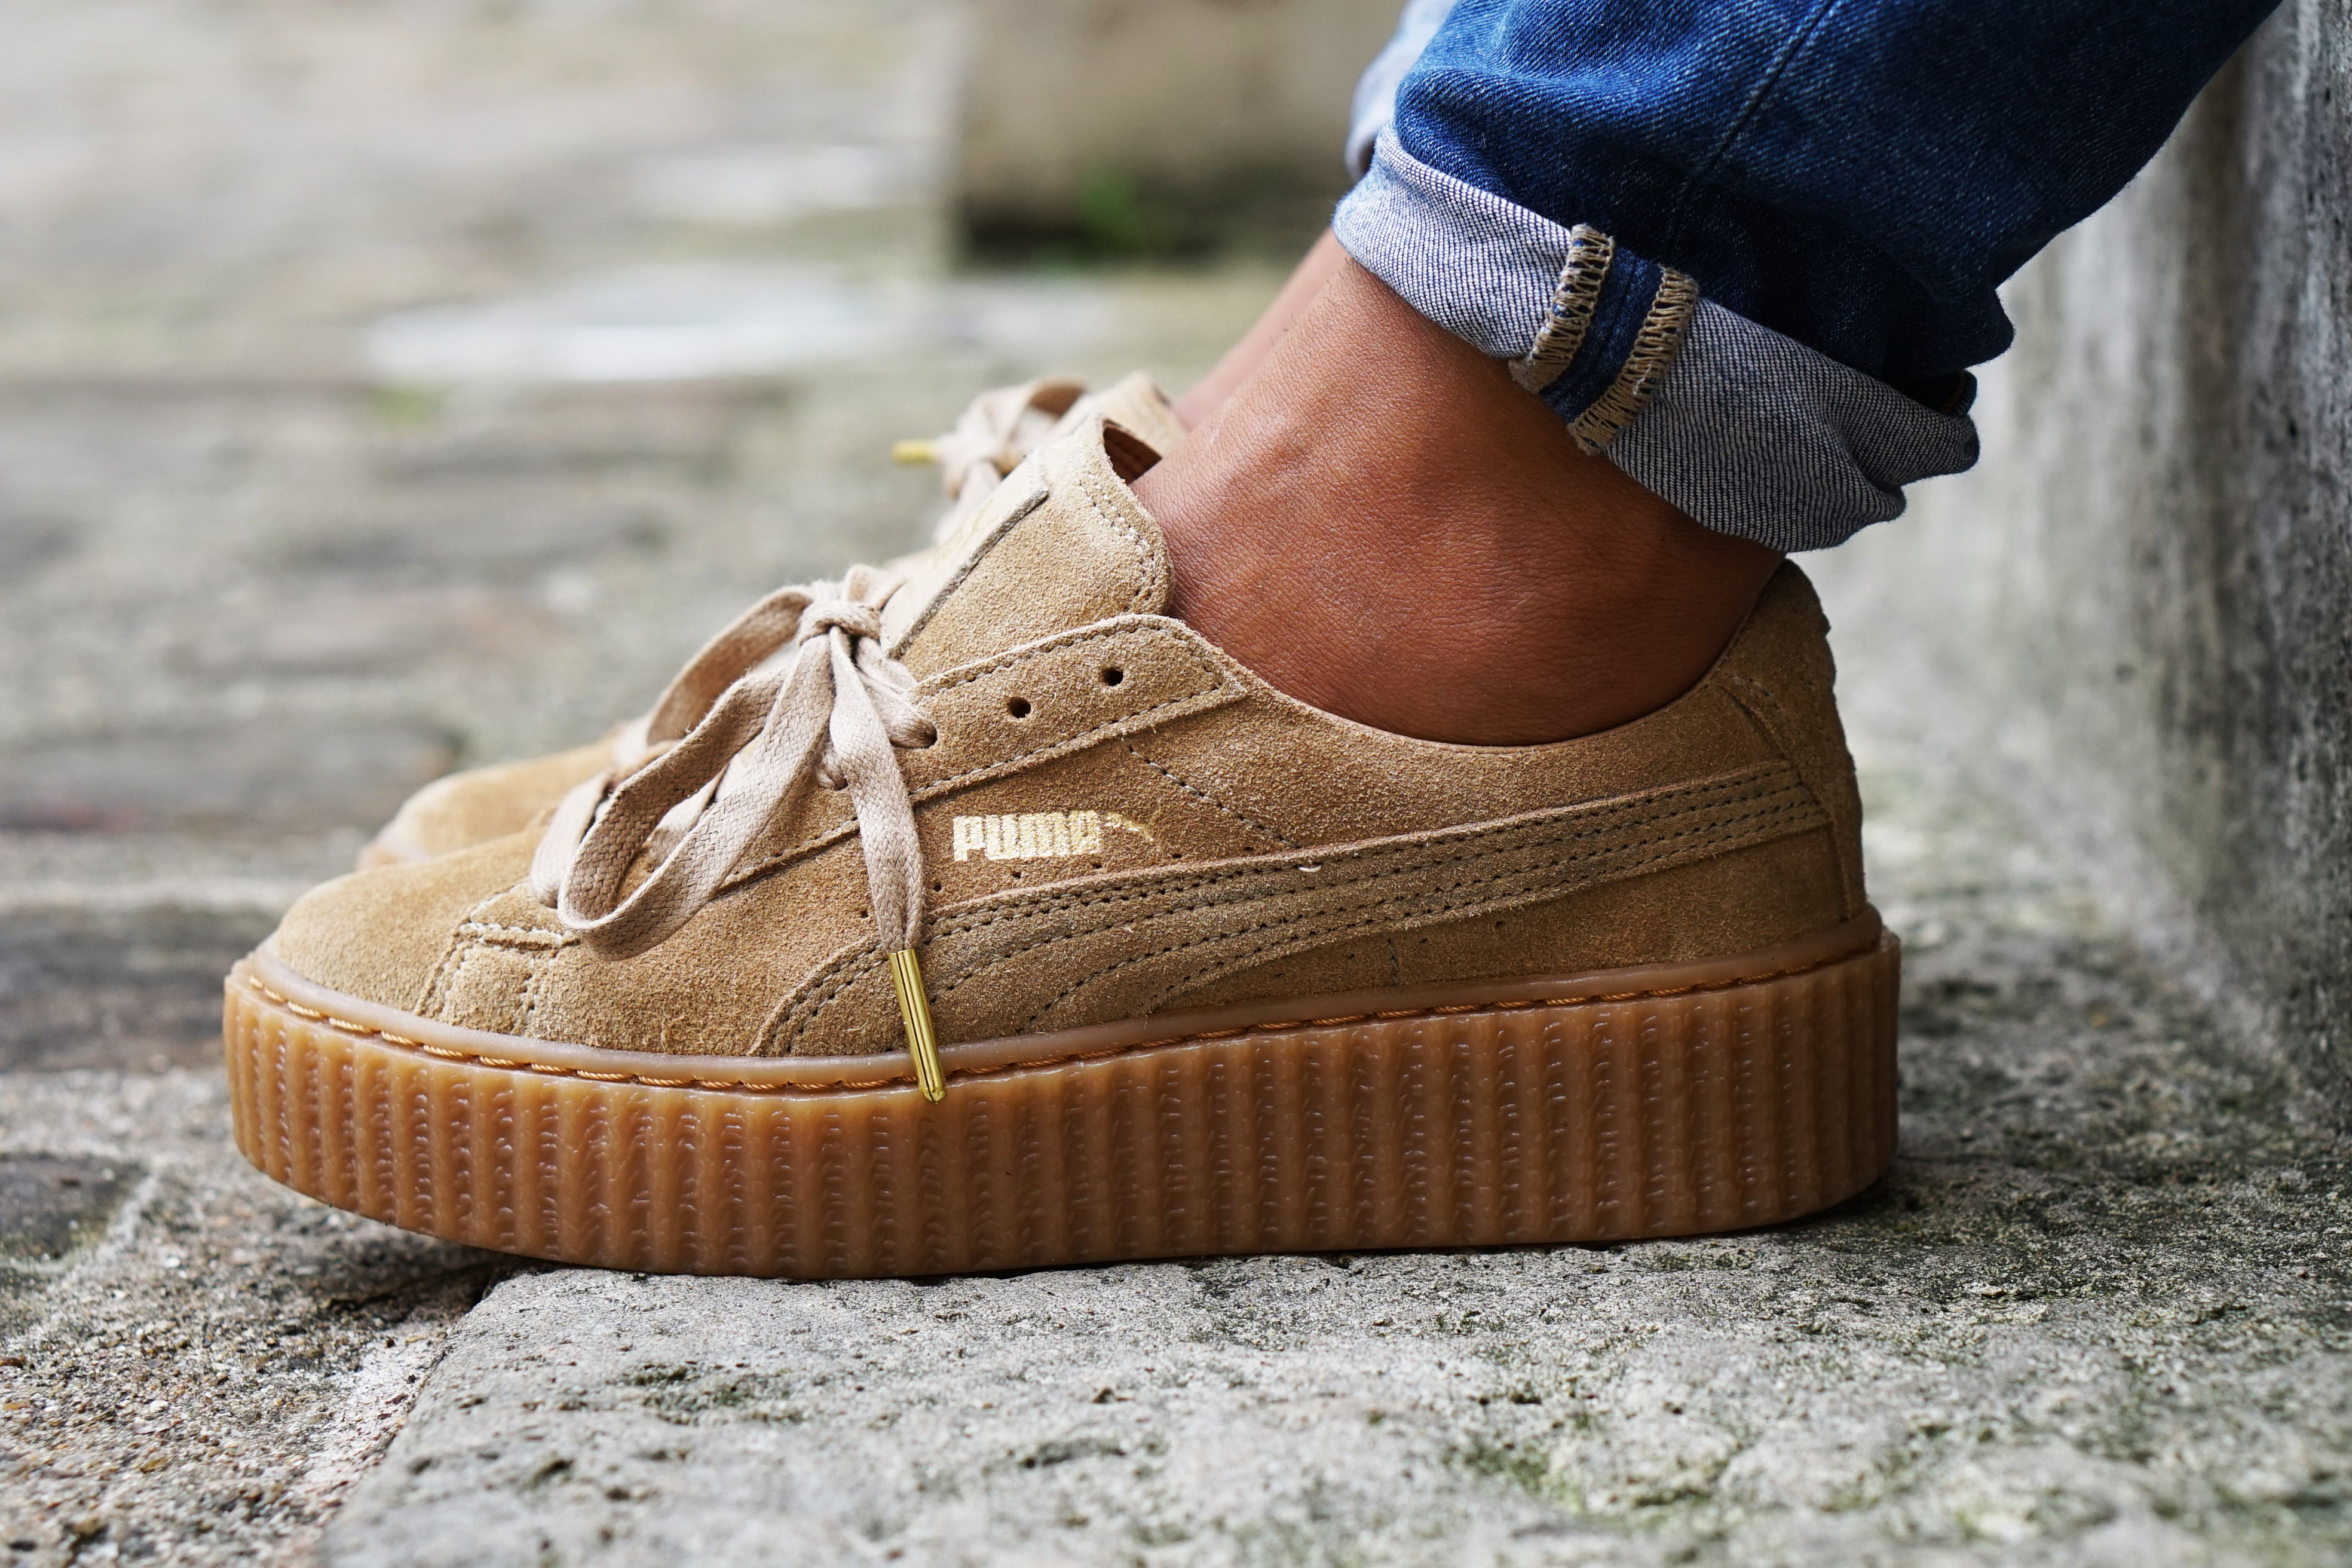 Puma Creeper by Rihanna. I NEED these sneakers in my life